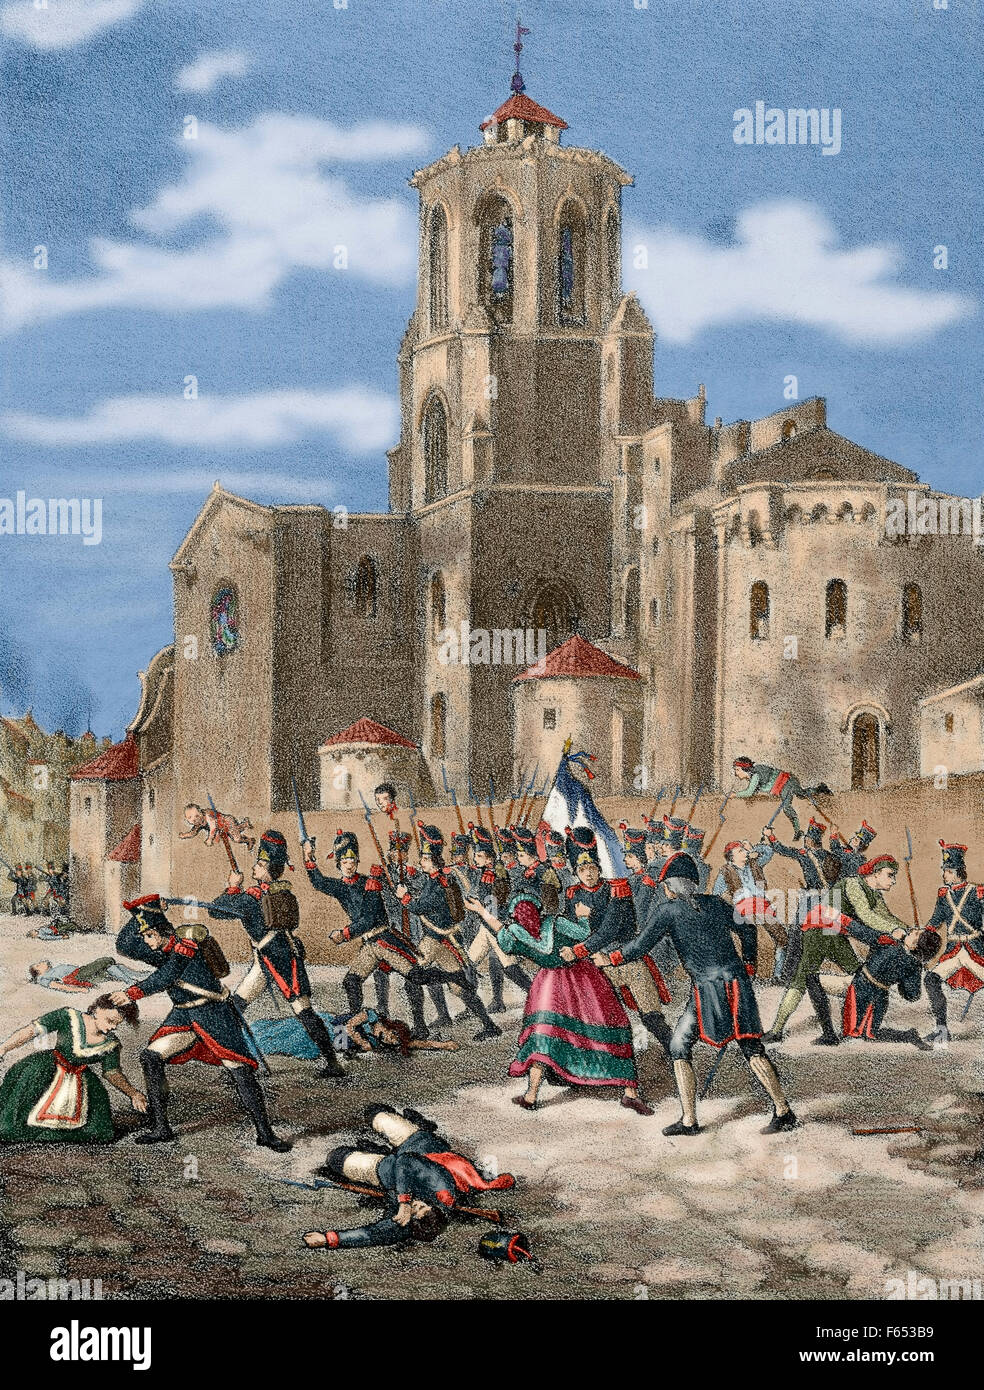 Peninsular War (1808-1814). Catalonia. Siege and Conquest of Tarragona by French troops under command of Marshal - Stock Image